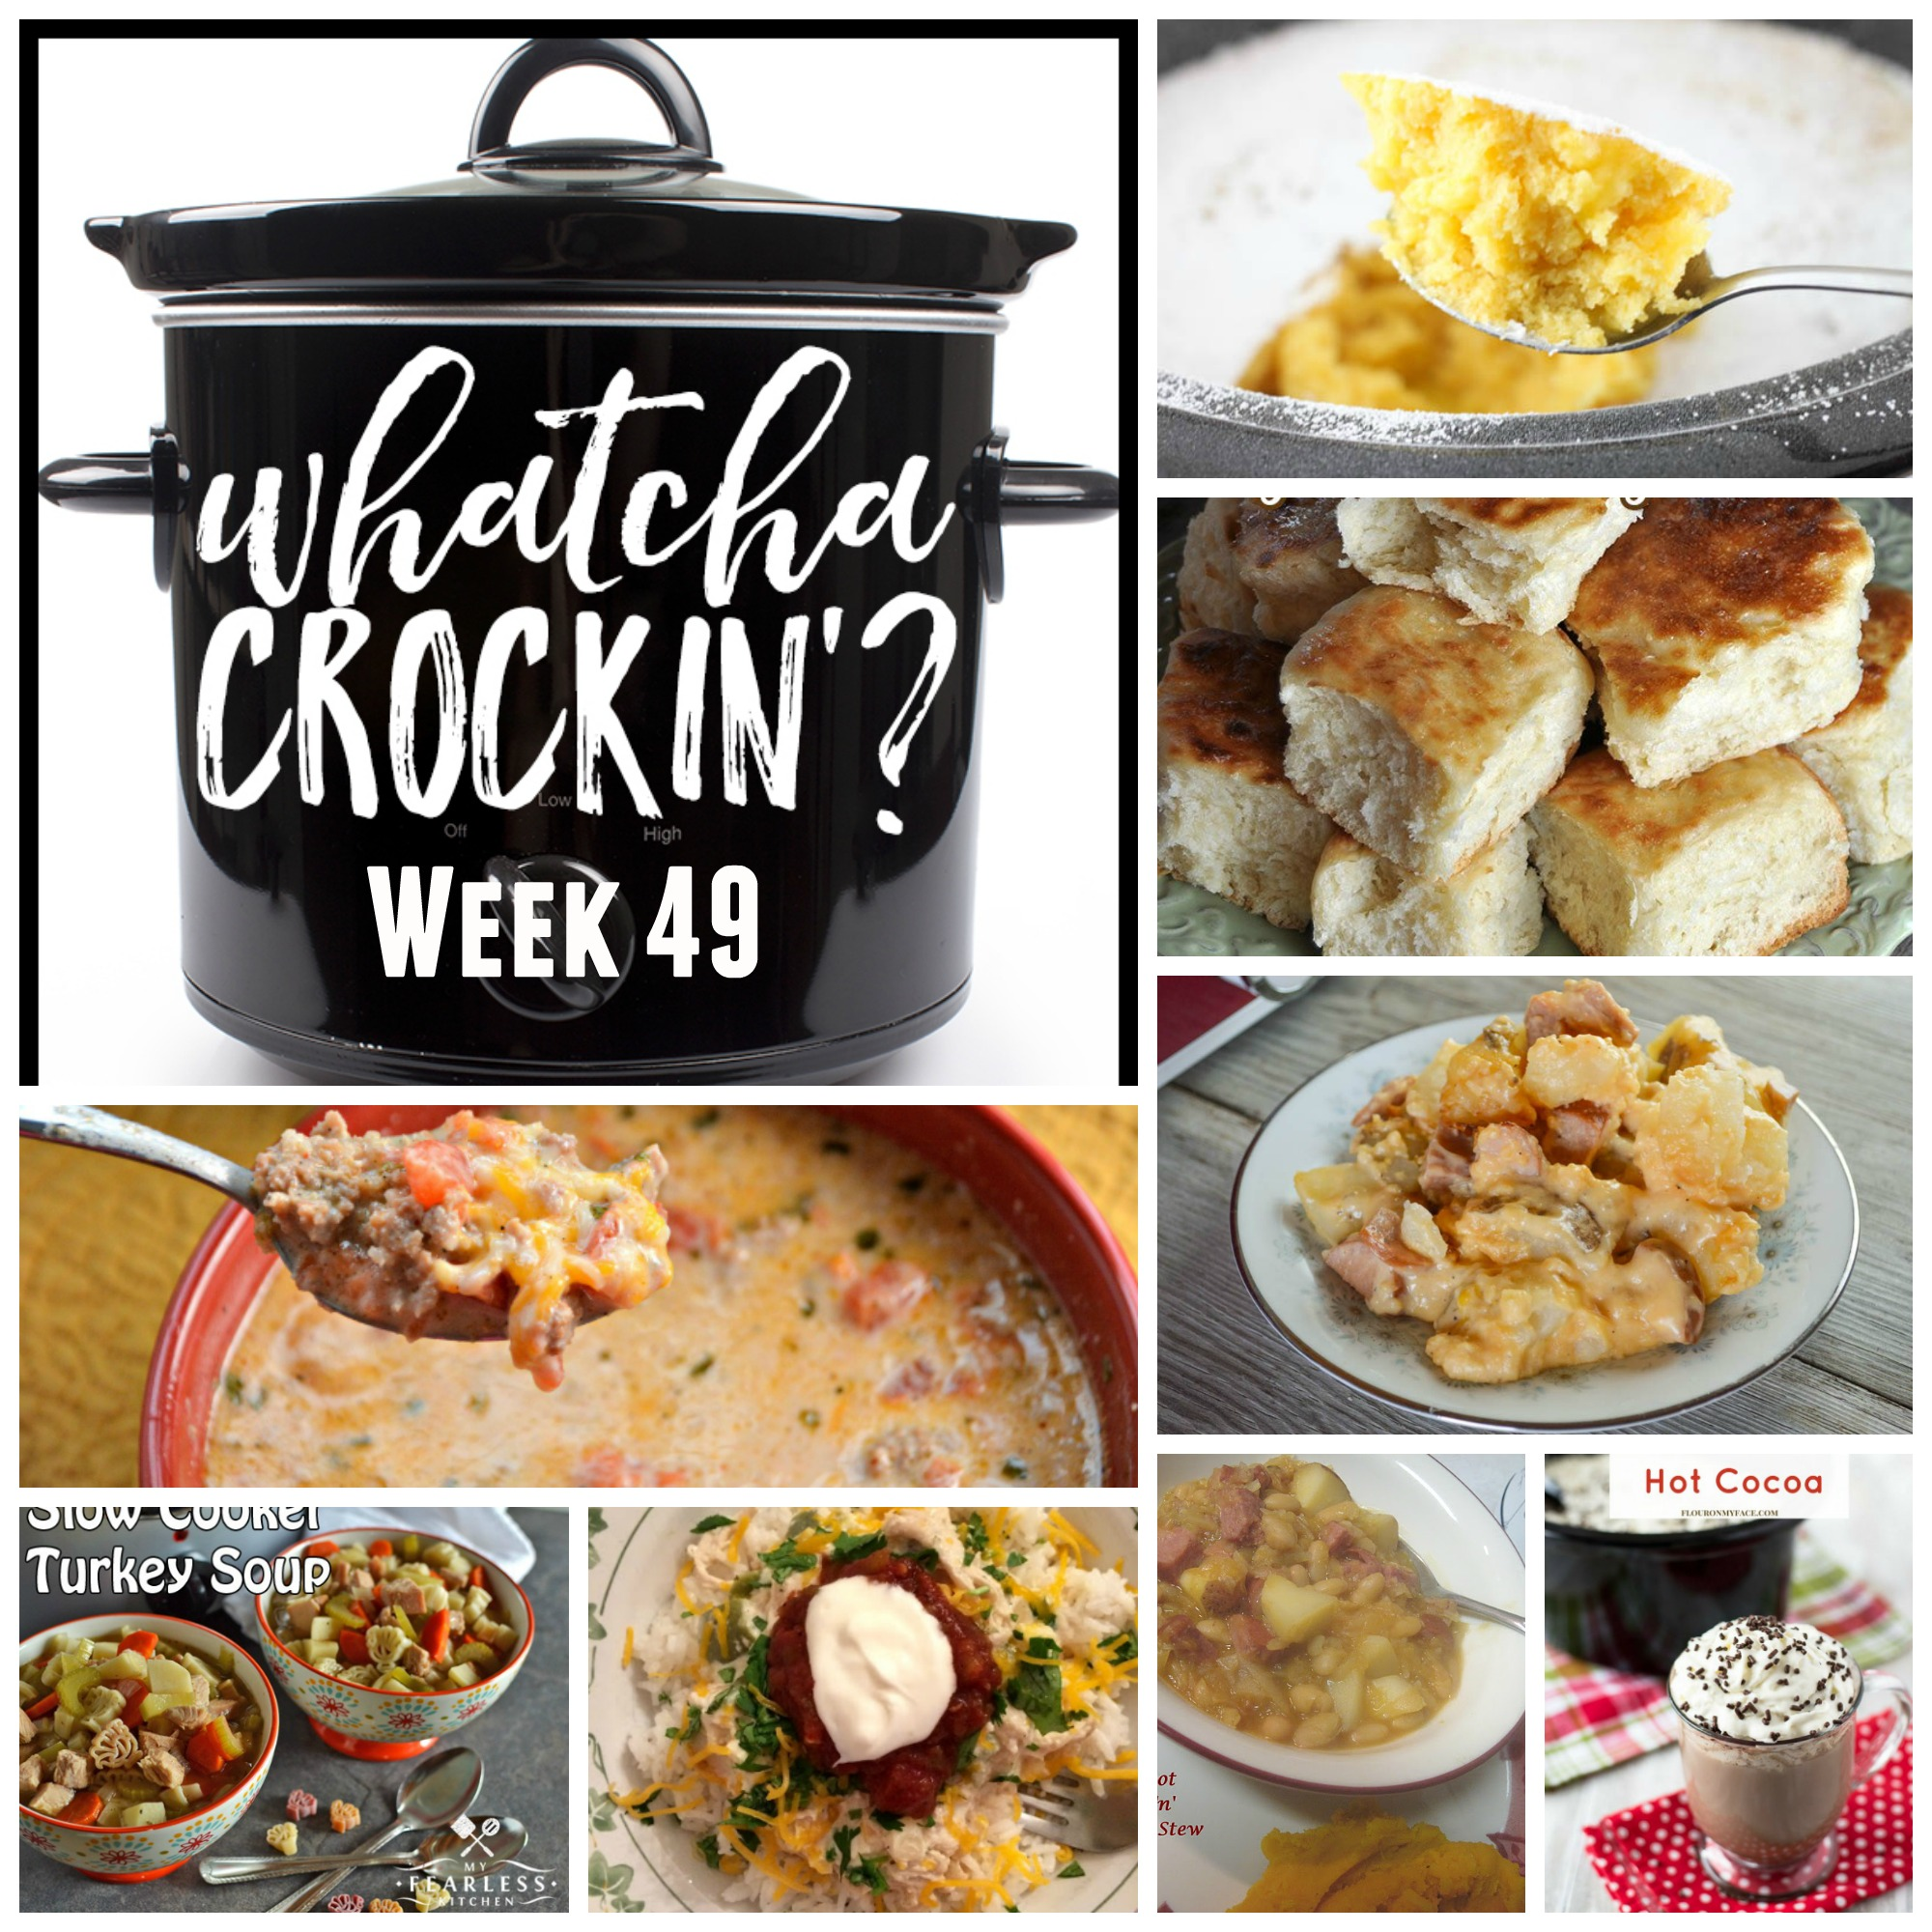 This week's Whatcha Crockin' crock pot recipes include Slow Cooker Ranch Chicken Rice Bowls, Warm Winter Lemon Cake, Crock Pot Low Carb Taco Soup, Crock Pot Cheesy Smoked Sausage and Potato Bake, Crock Pot Homemade Yeast Rolls, Sweet and Creamy Crock Pot Hot Cocoa, Crockpot Beans 'n' Kraut Stew, Slow Cooker Turkey Soup and many more!